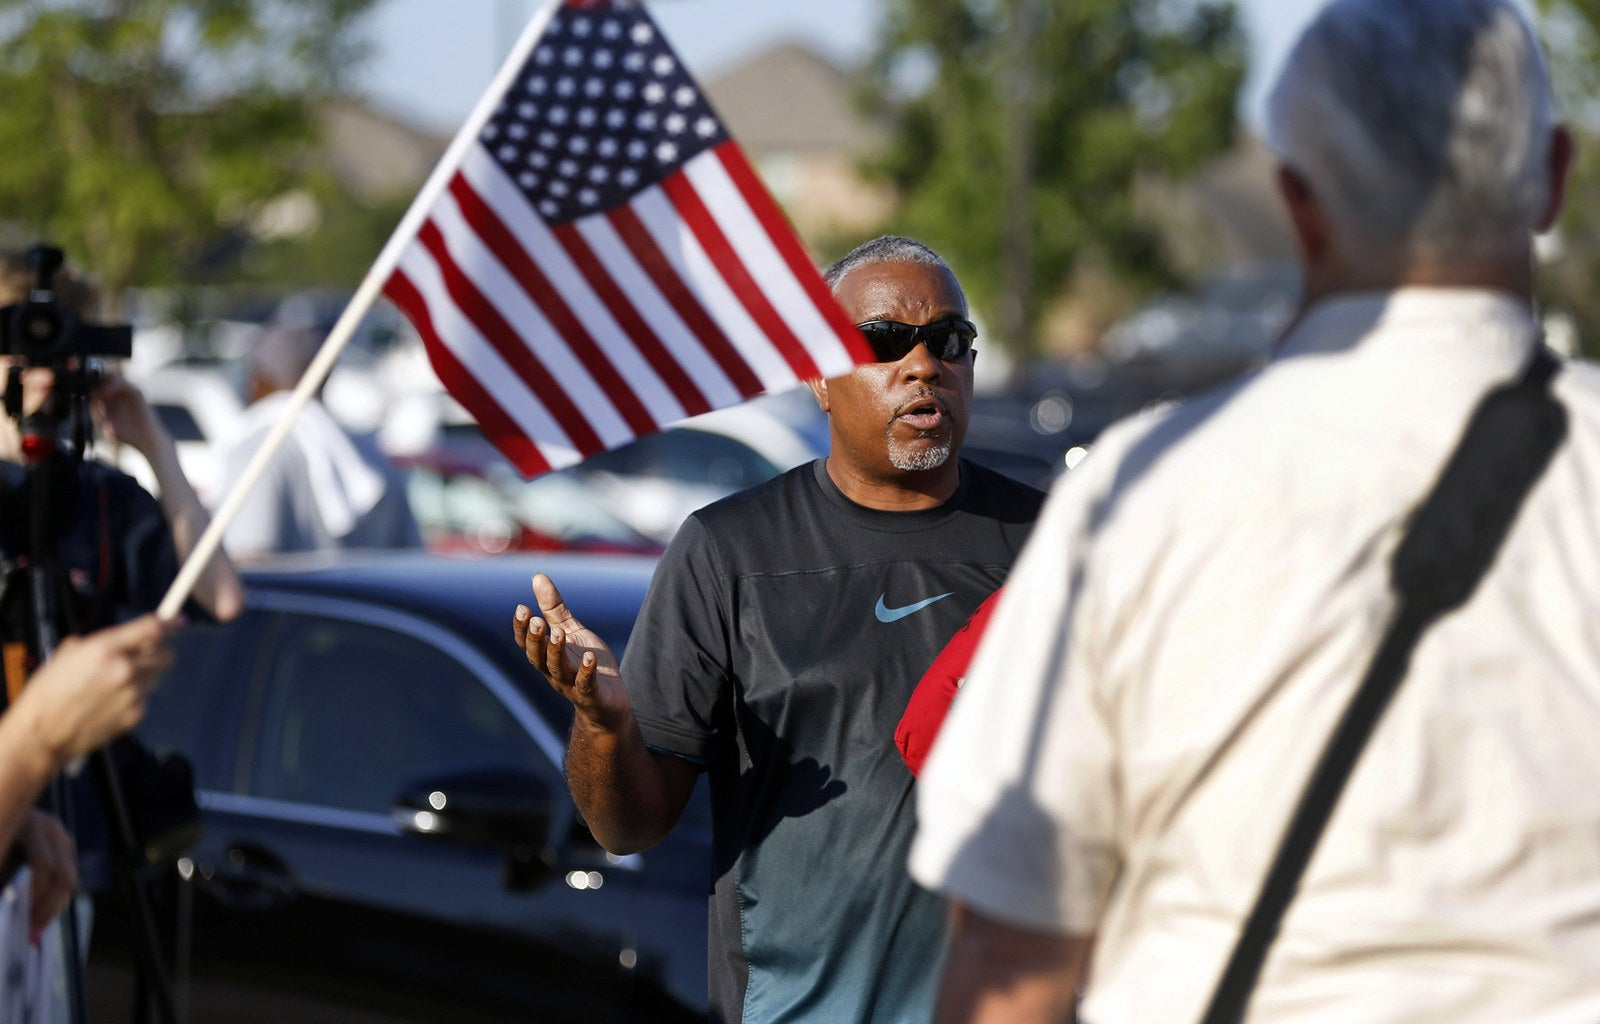 An anti-police-brutality protester in McKinney on Monday.